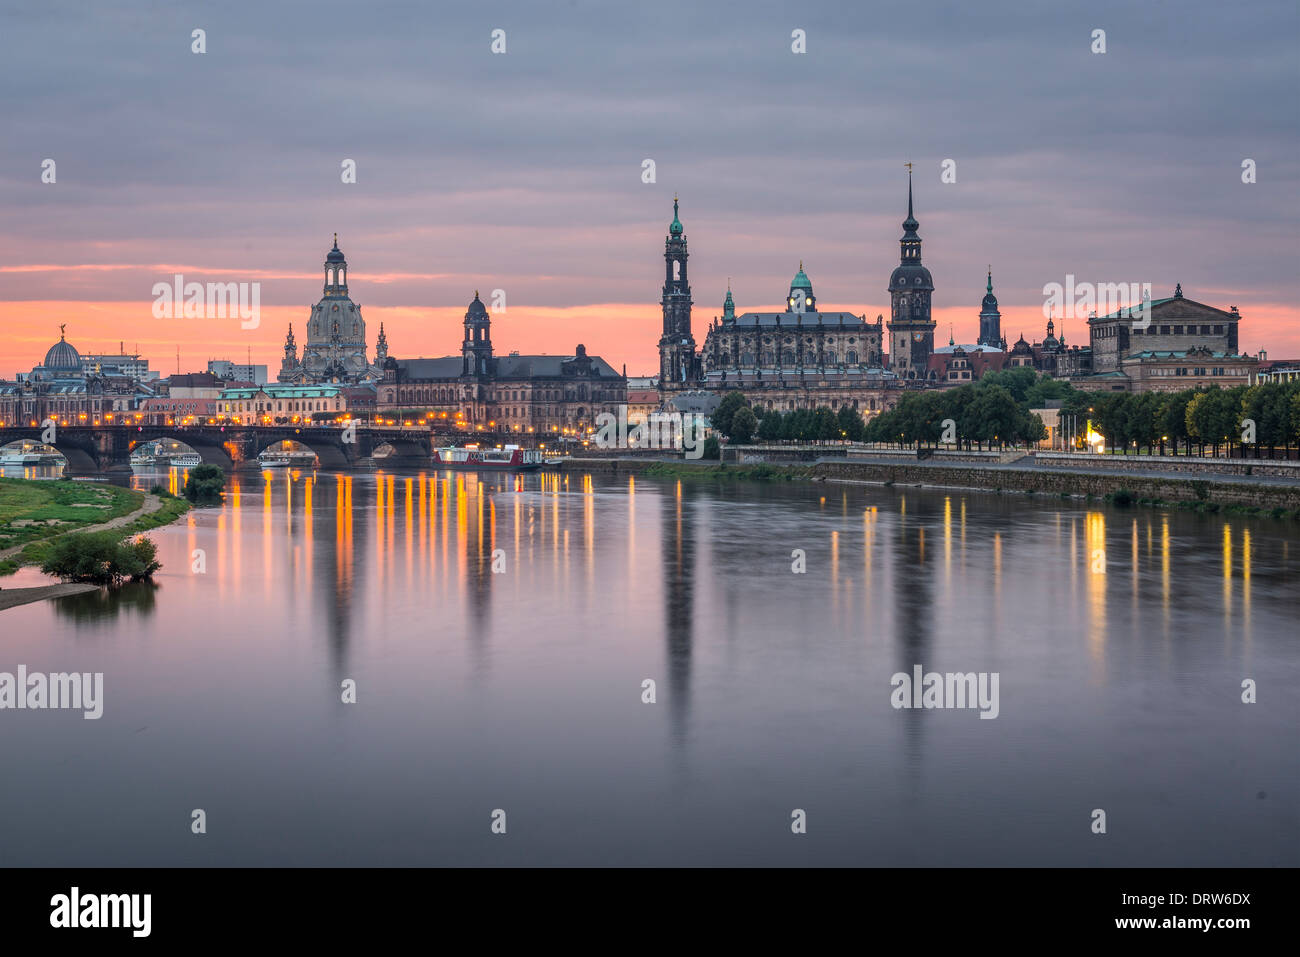 Dresden, Germany above the Elbe River at dawn - Stock Image